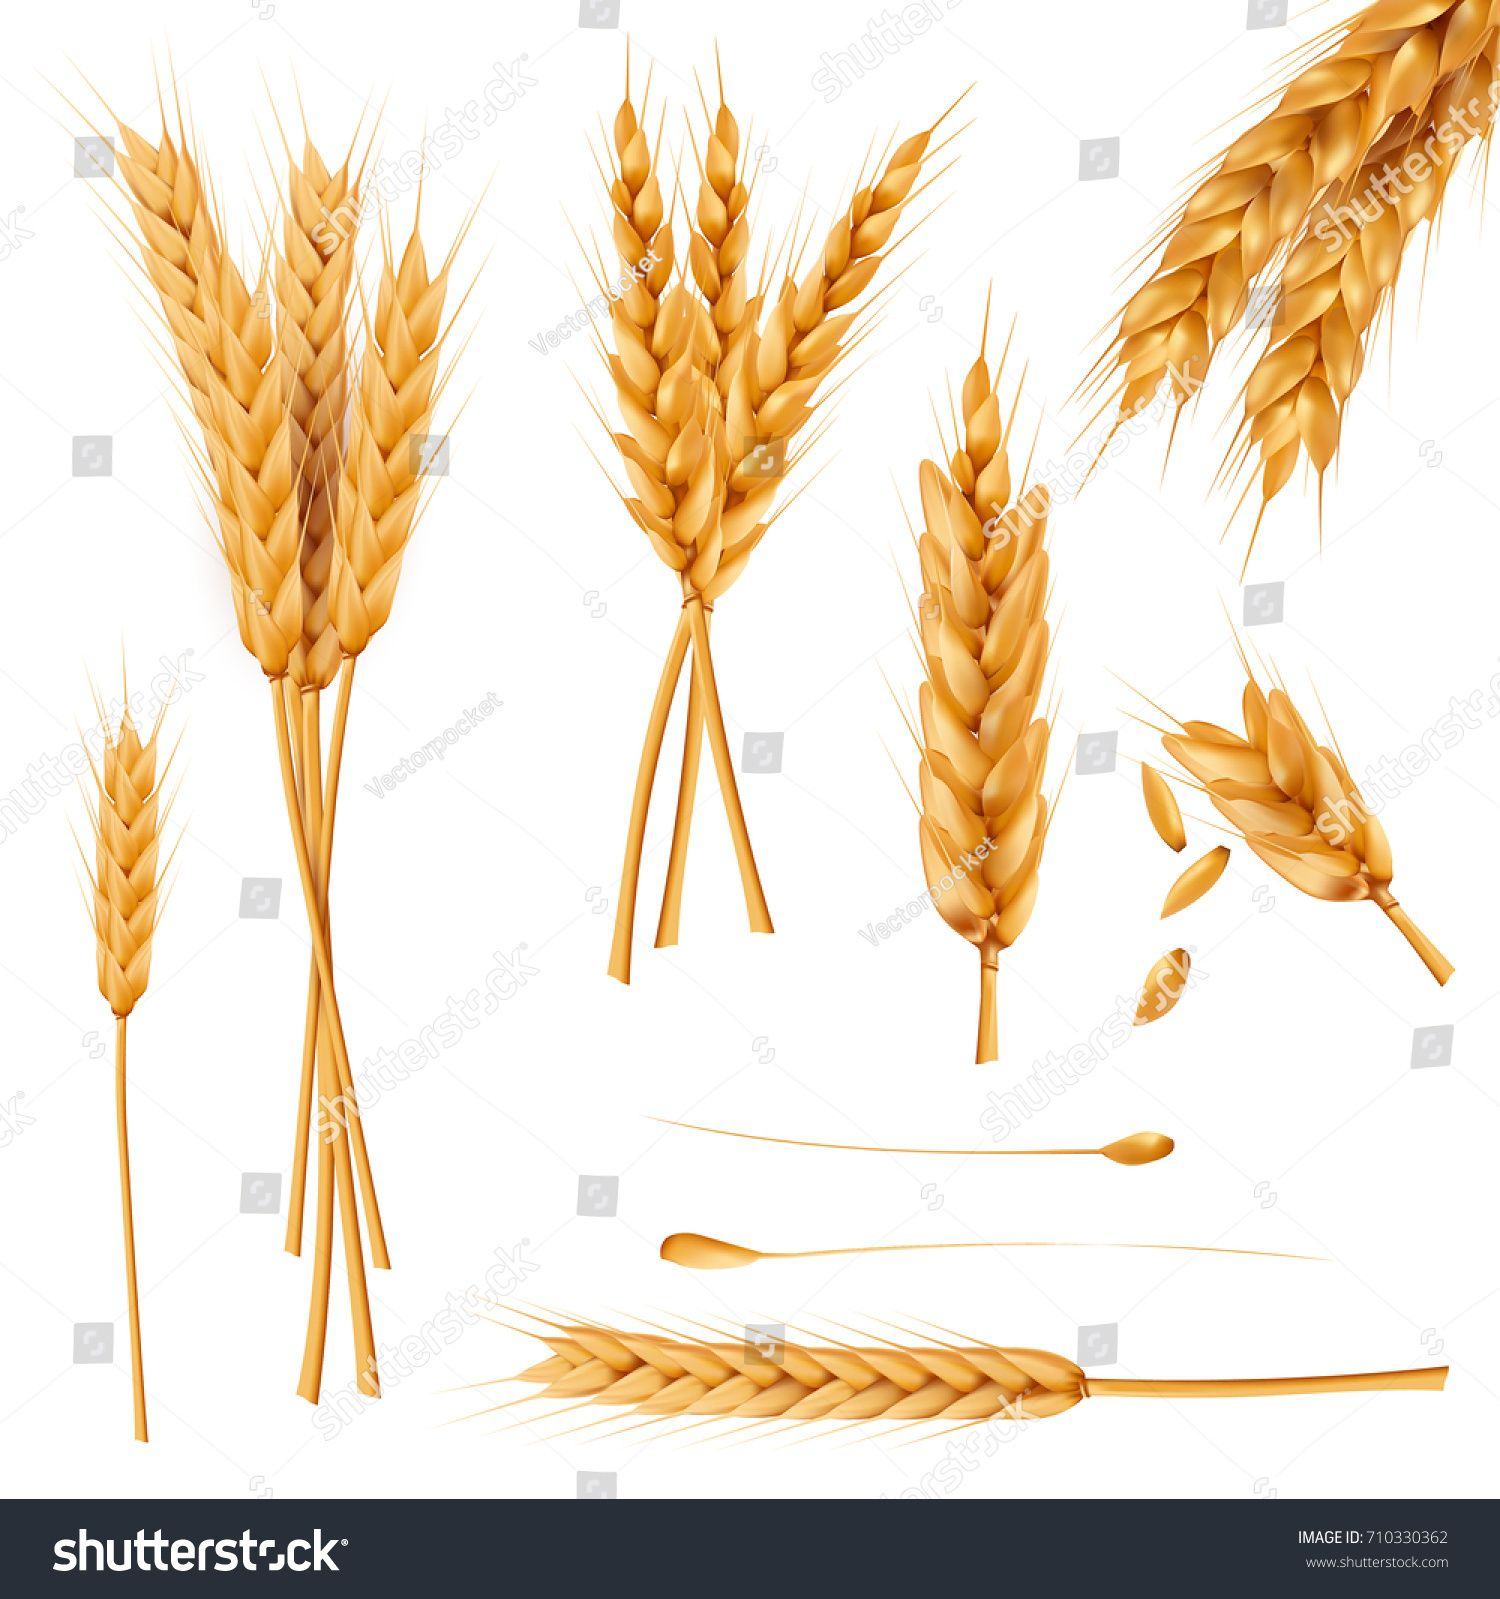 Bunch of wheat ears, dried whole grains realistic vector